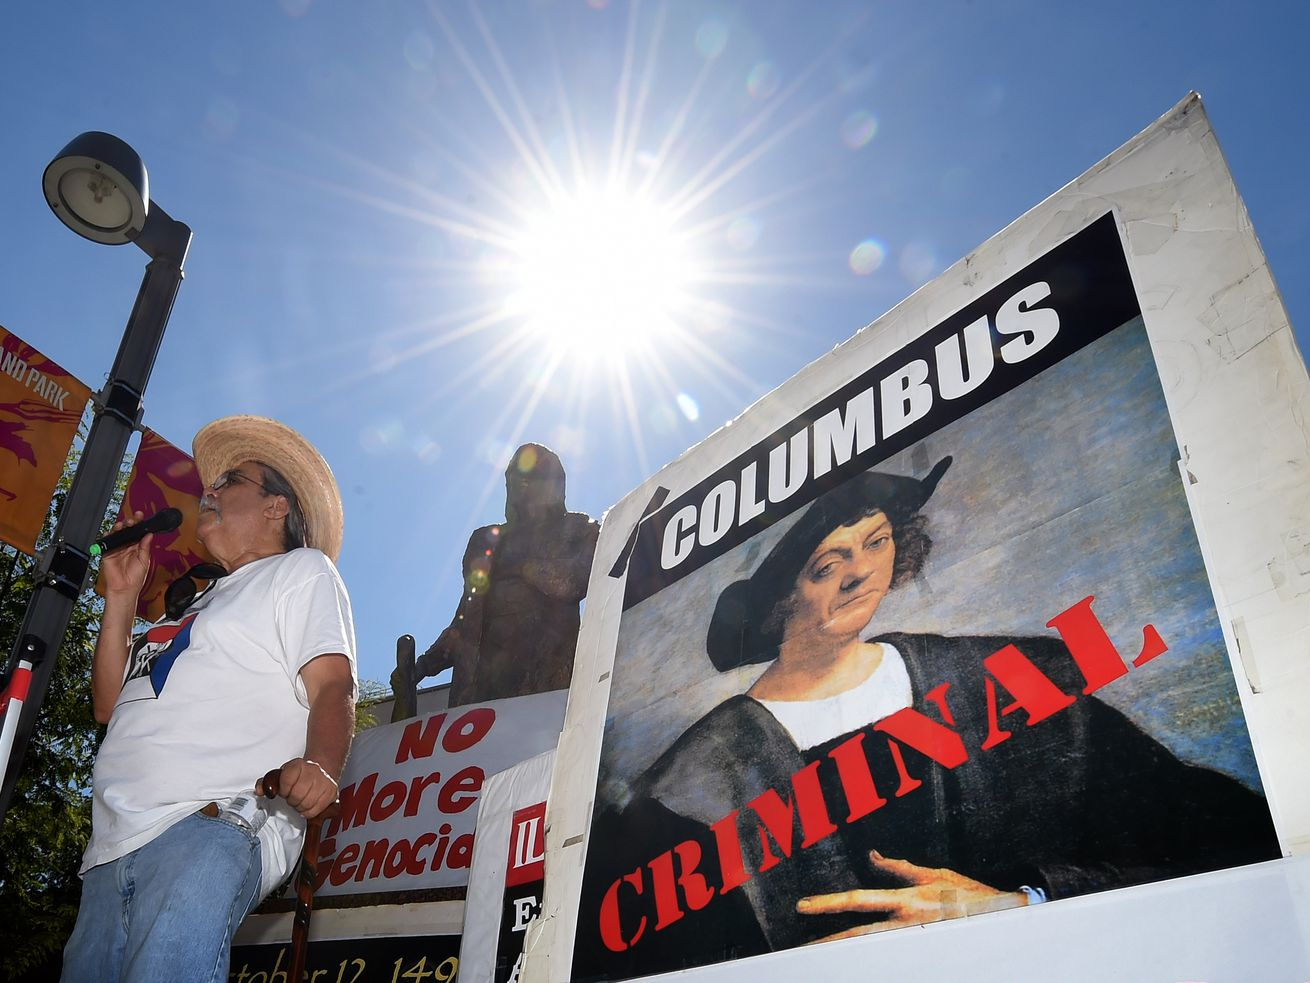 US-SOCIETY-HOLIDAY-COLUMBUS DAY